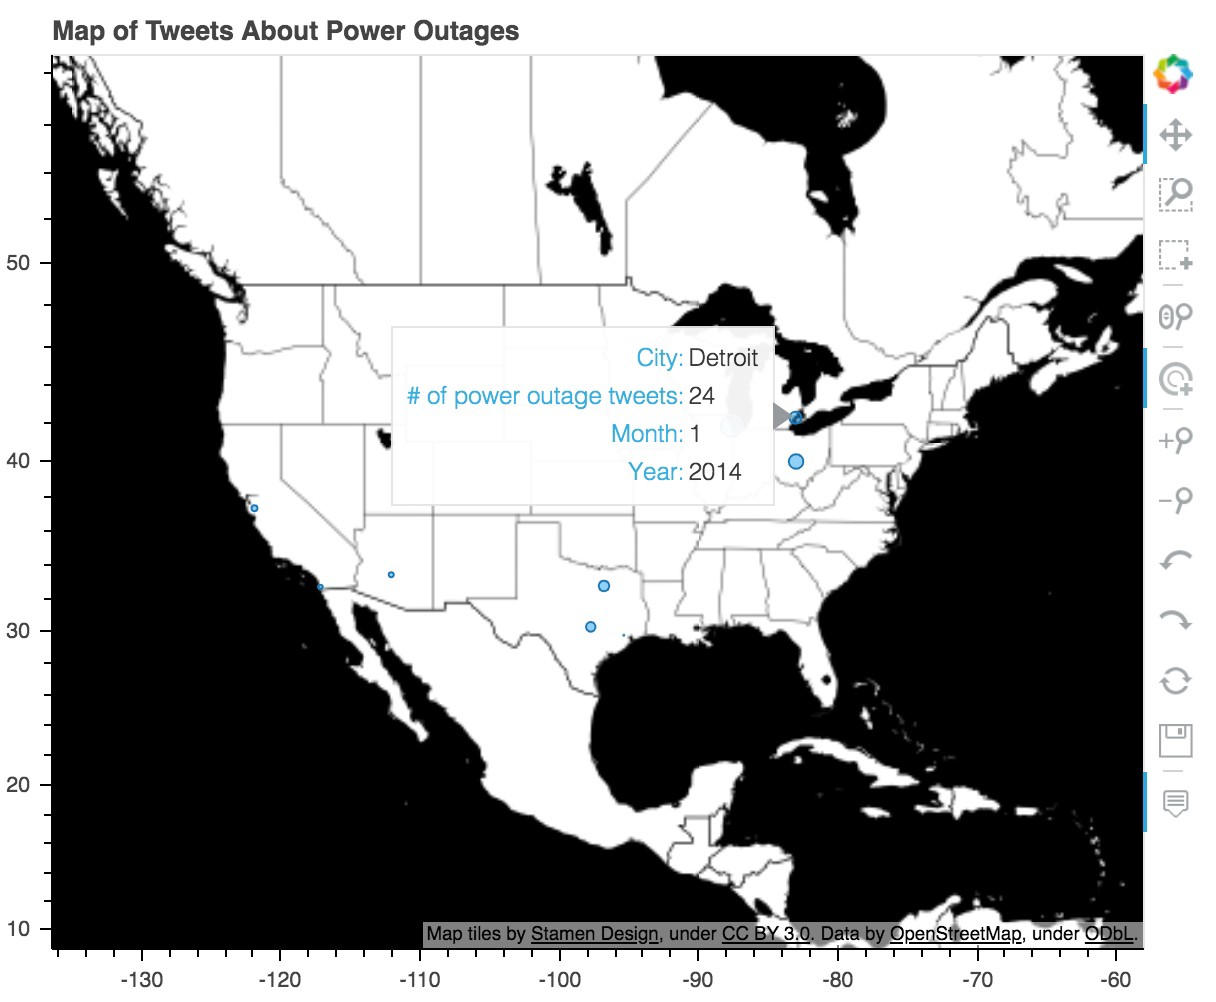 Can We Use Social Media to Locate Legitimate Power Outages?